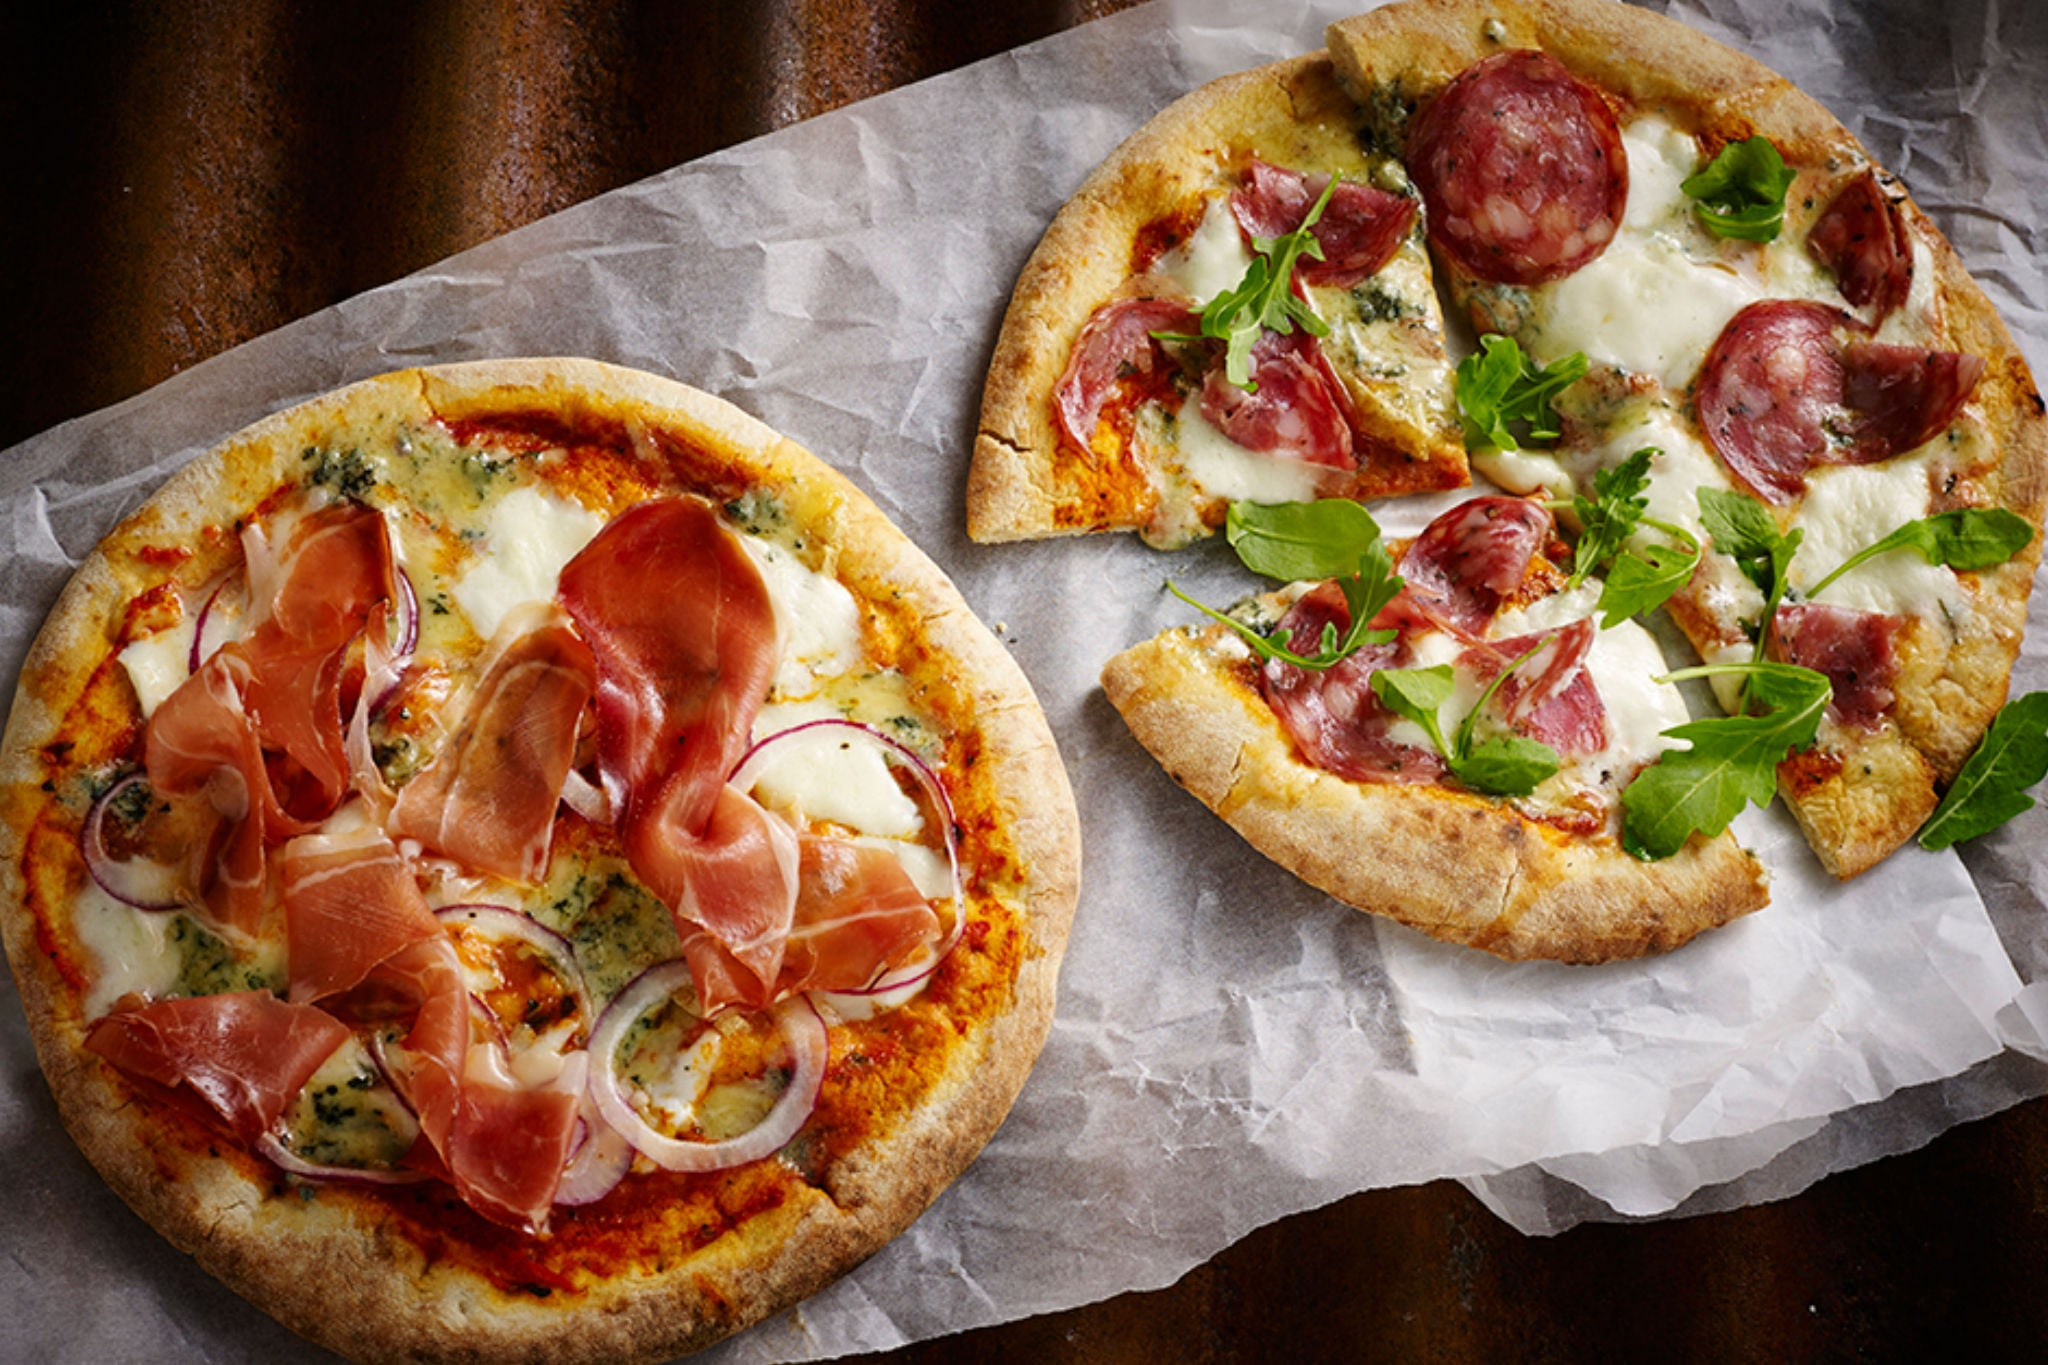 Pizzas topped with Black Combe Air-Dried Ham and Cumberland Salami